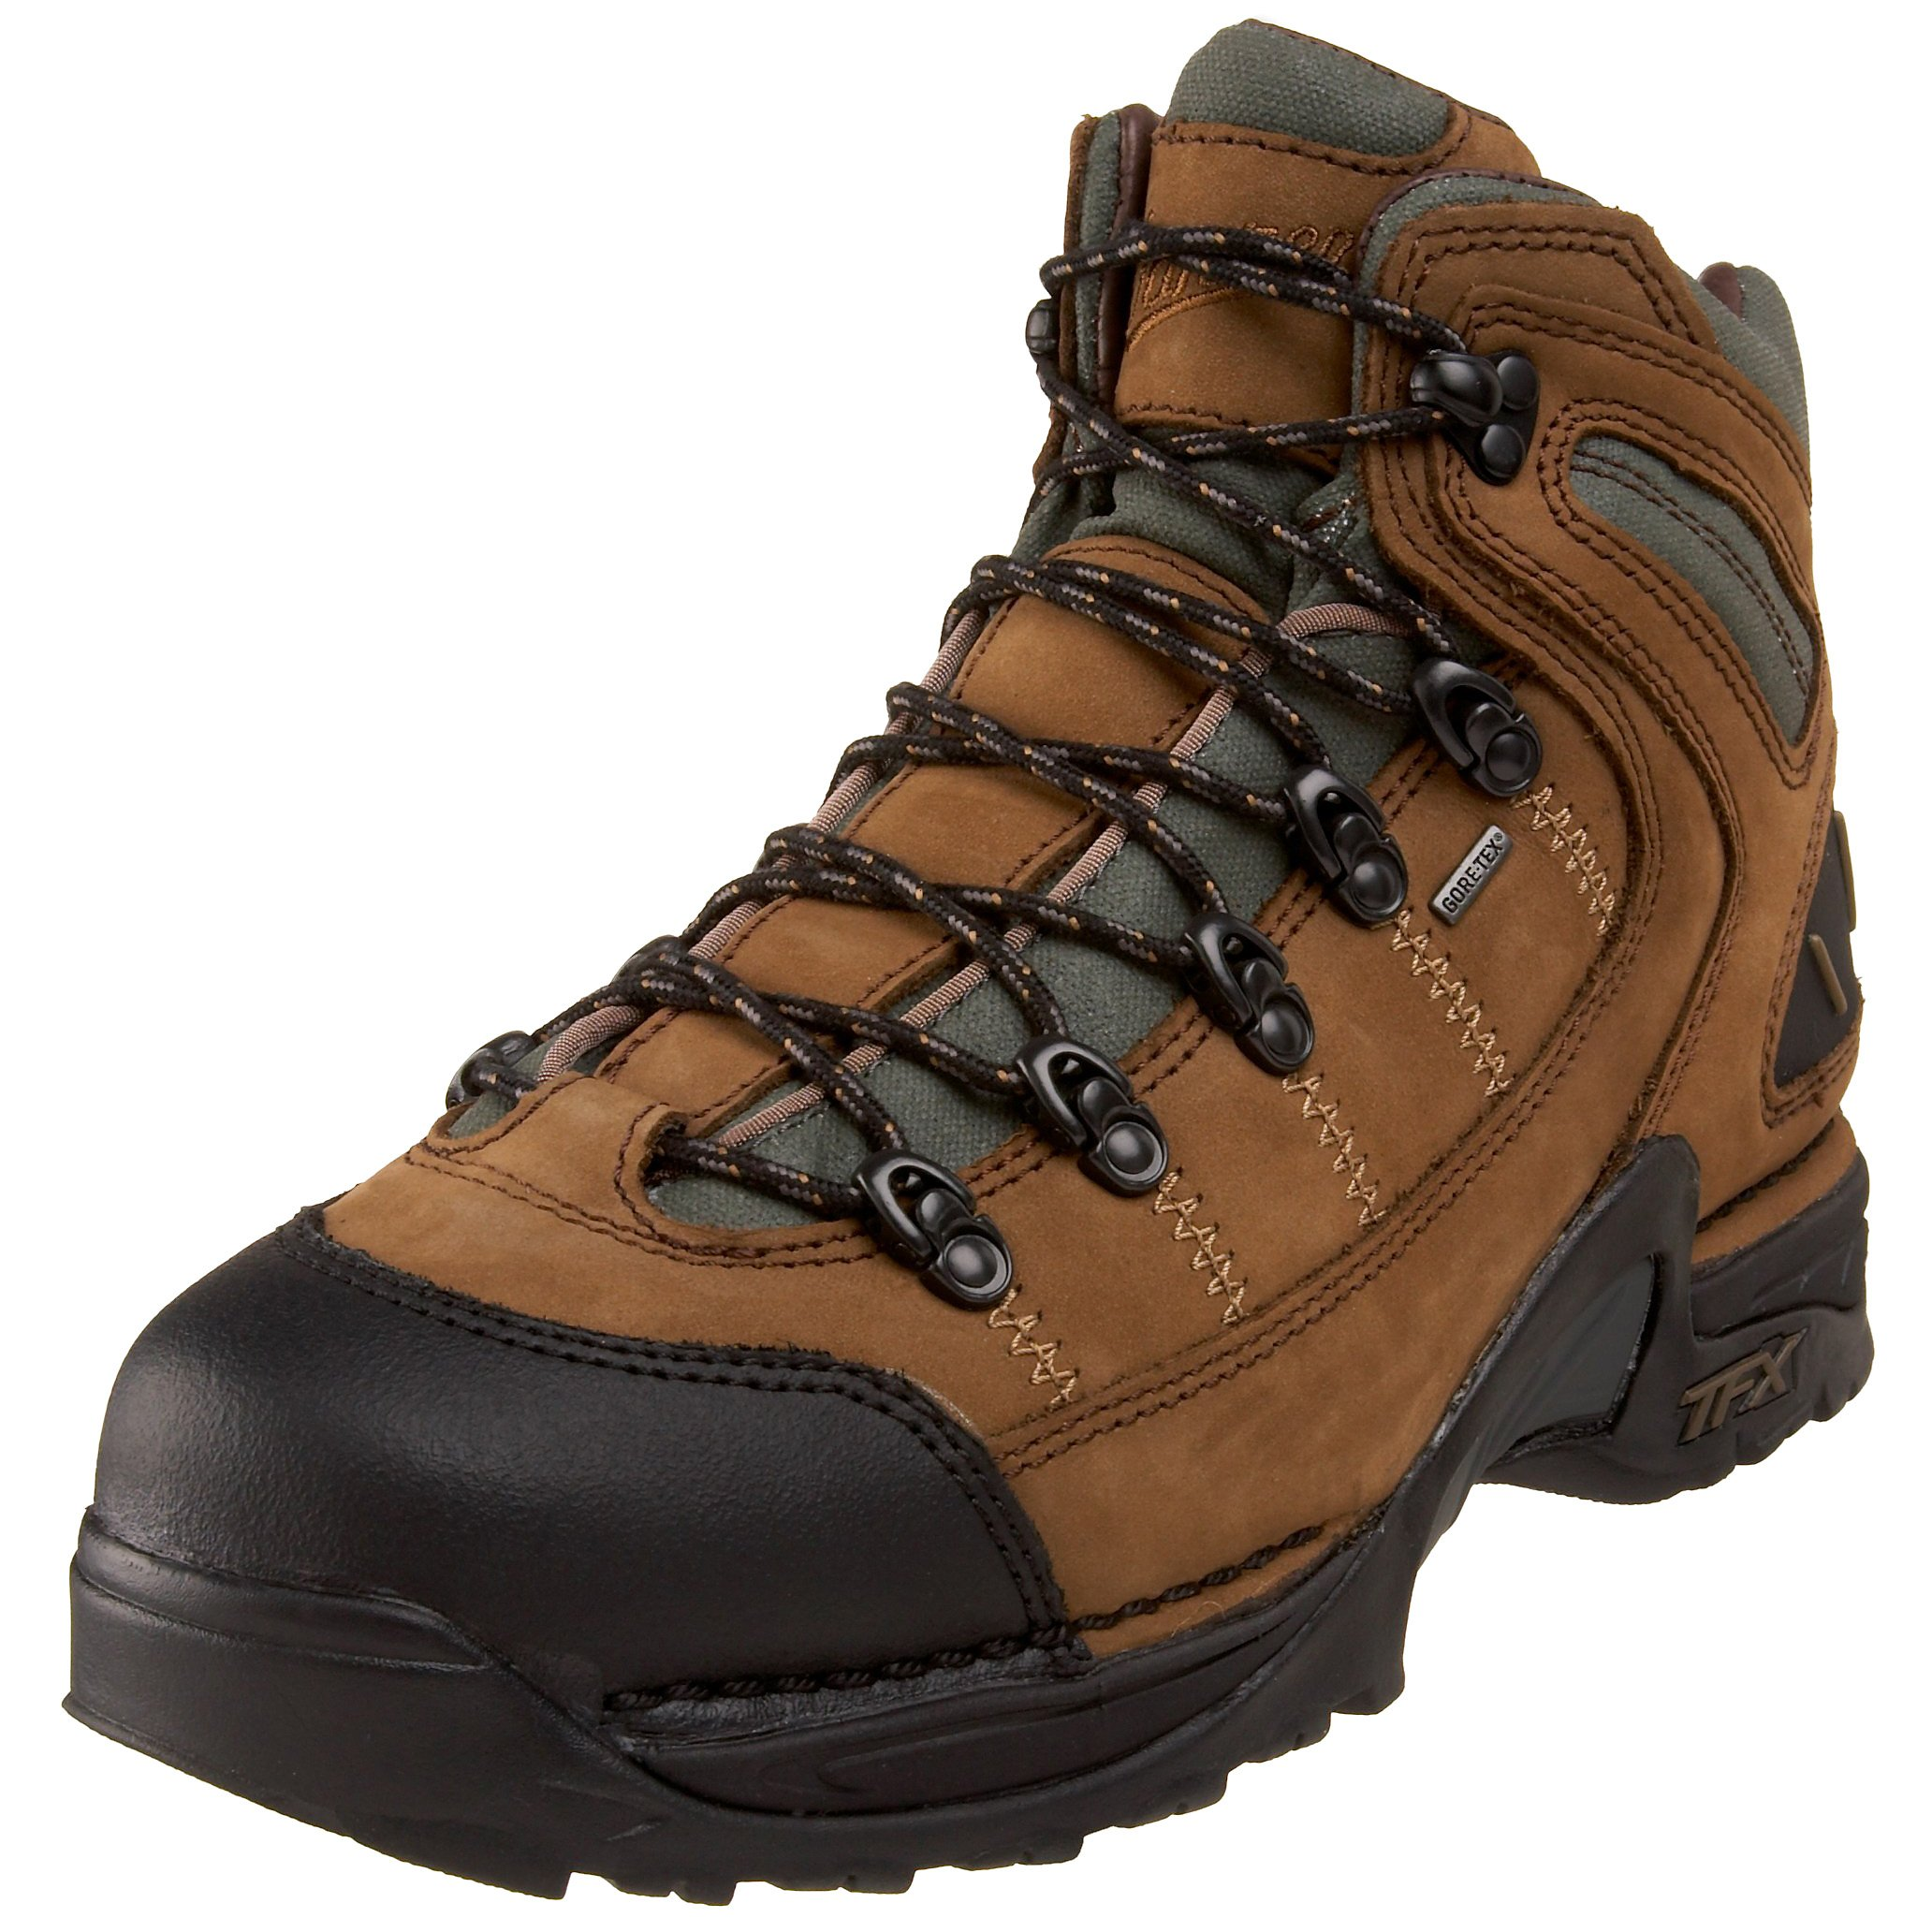 Danner Men's 453 Dark Tan Gore-Tex (GTX) Outdoor Boot 10.5 D(M) US